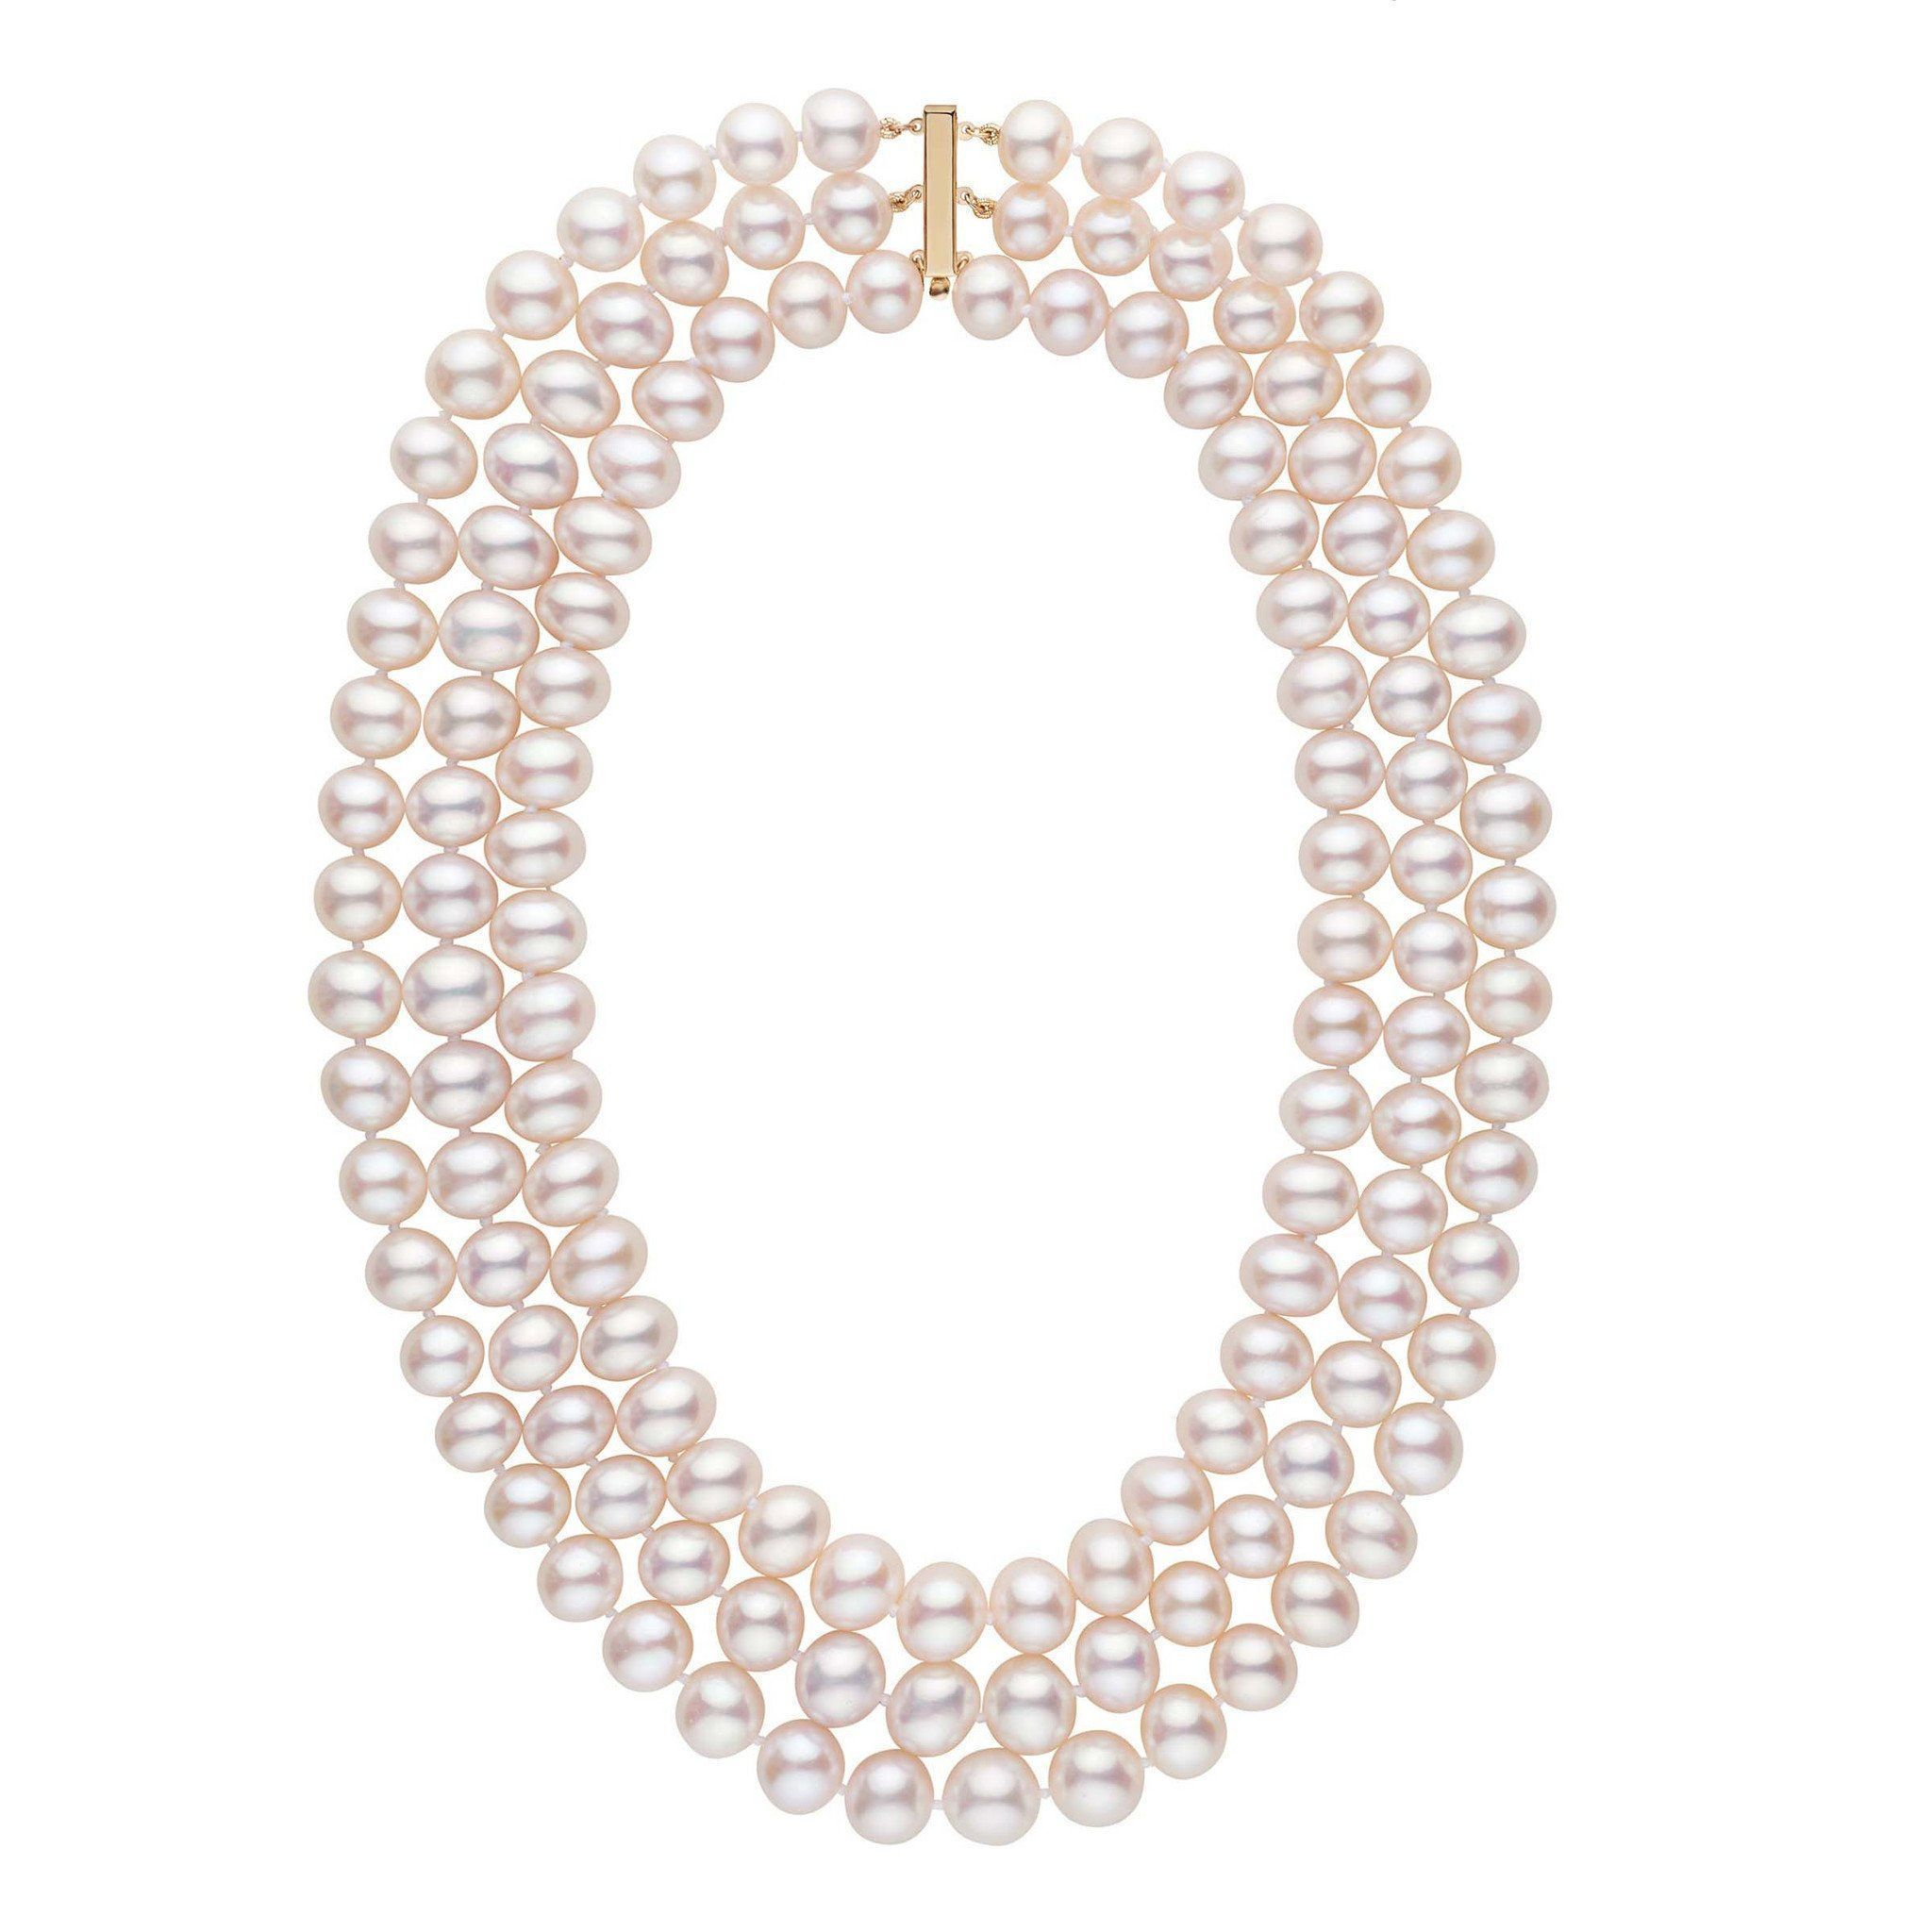 Triple Strand 9.5-10.5 mm AA+ White Freshwater Cultured Pearl Necklace